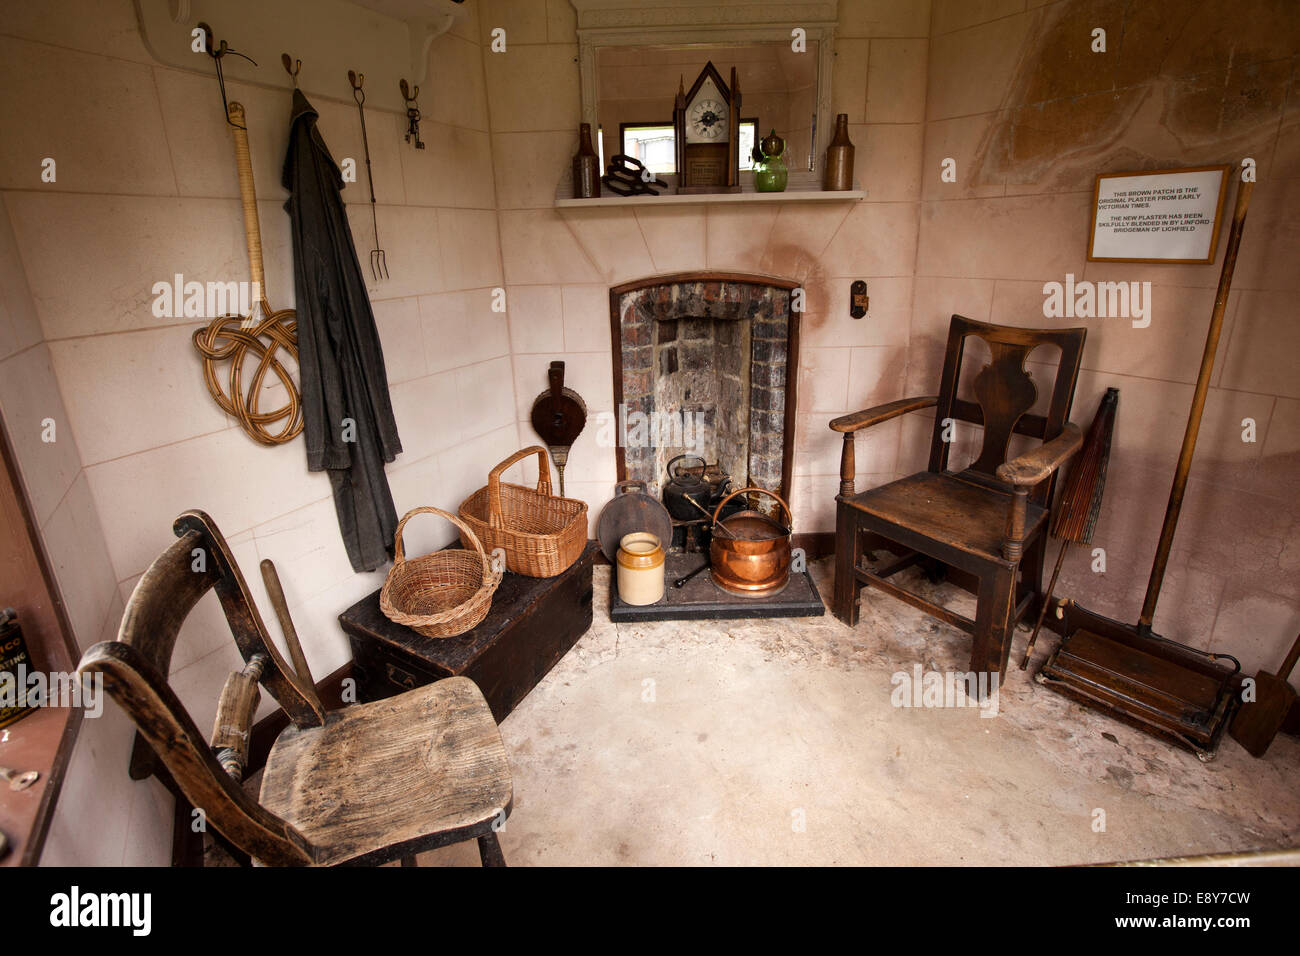 UK, England, Warwickshire, Warwick, Hill Close Gardens, restored summerhouse interior - Stock Image